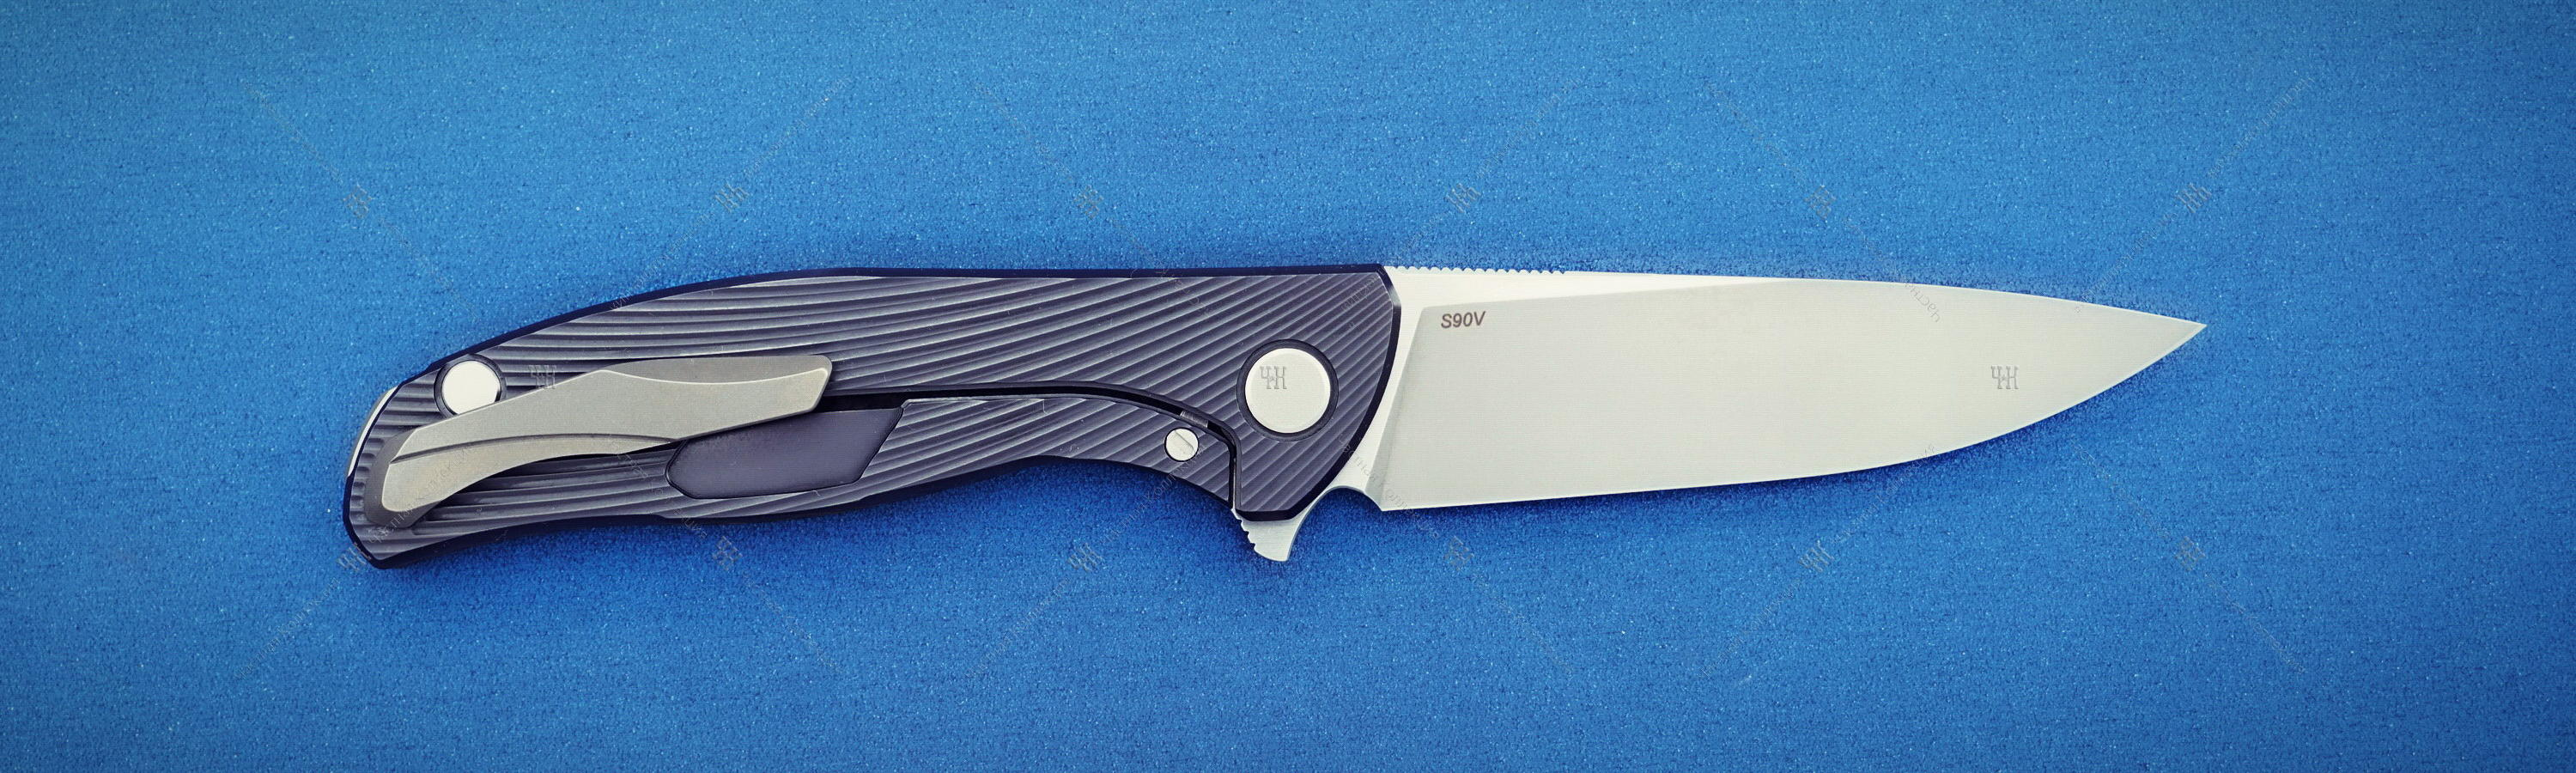 SBW limited knife